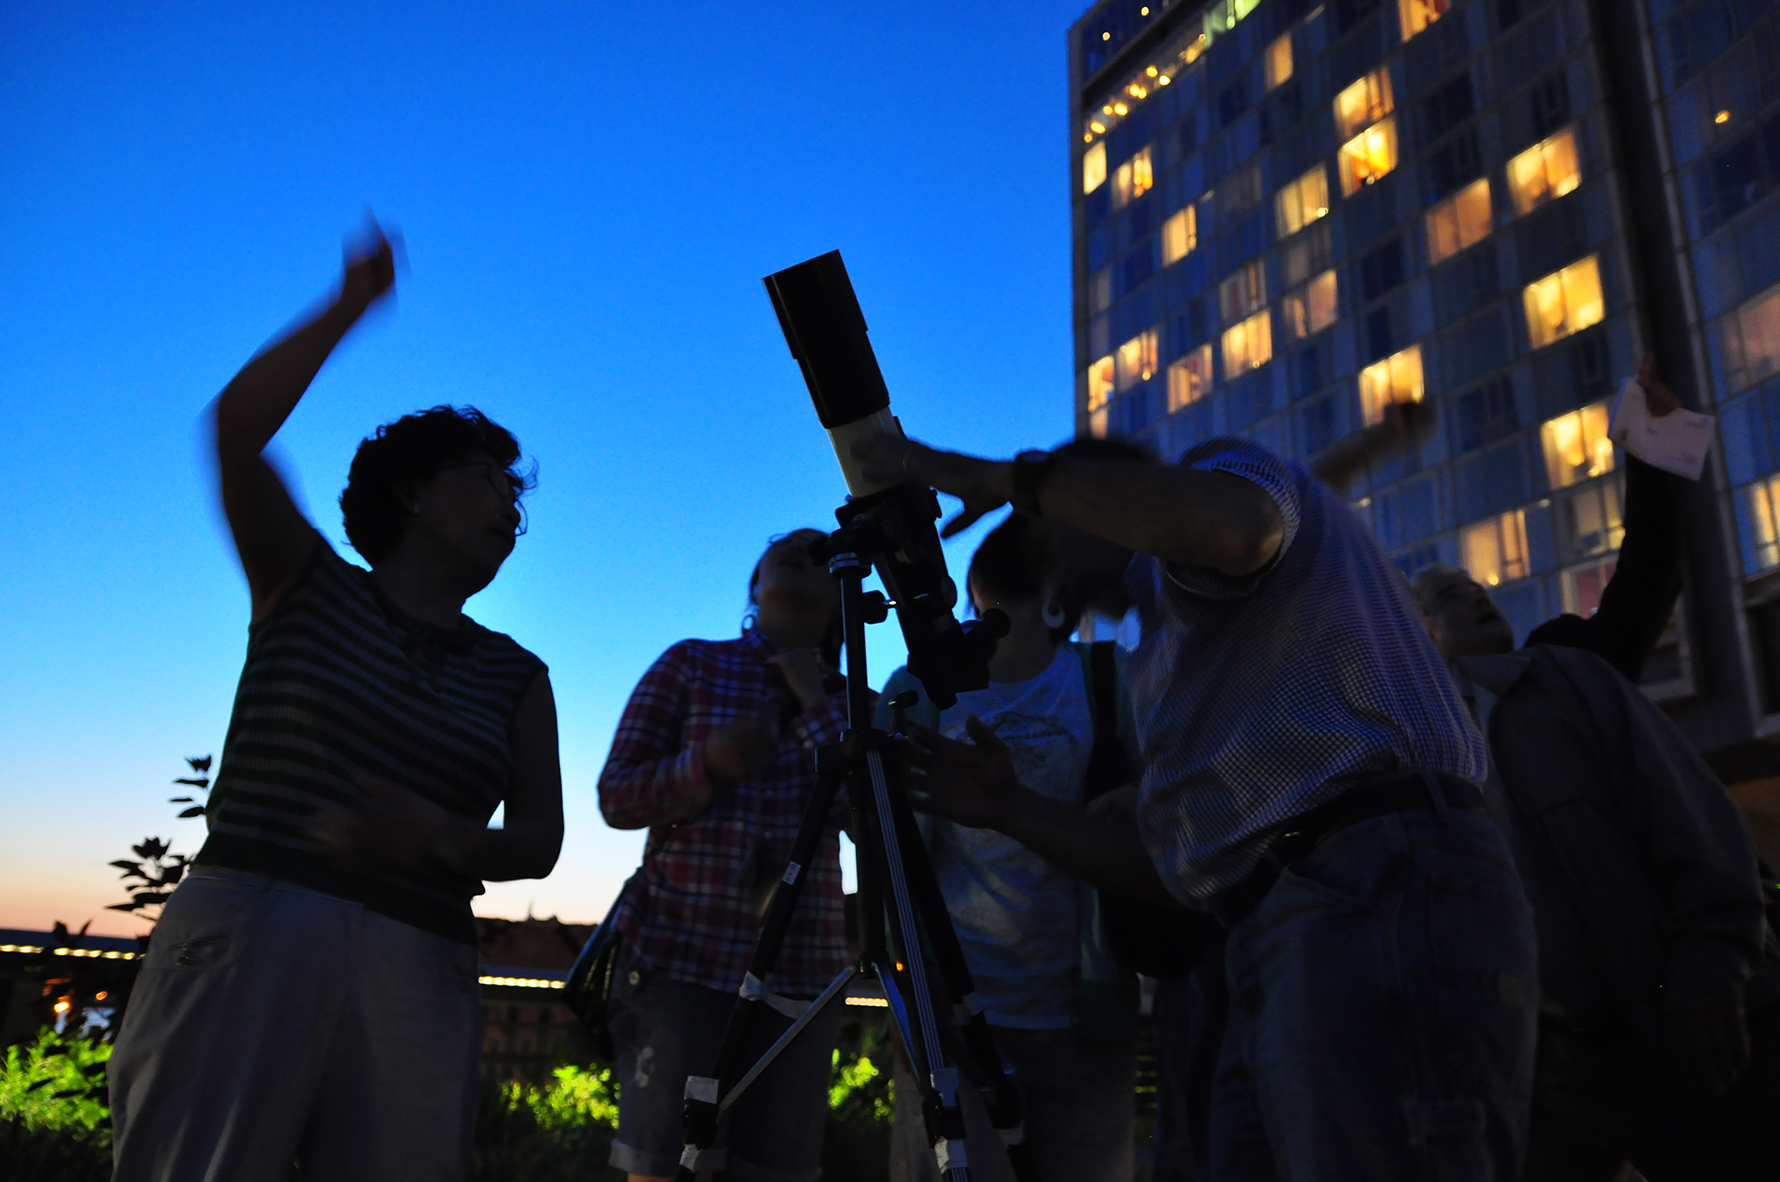 Four people looking at the night sky through a telescope